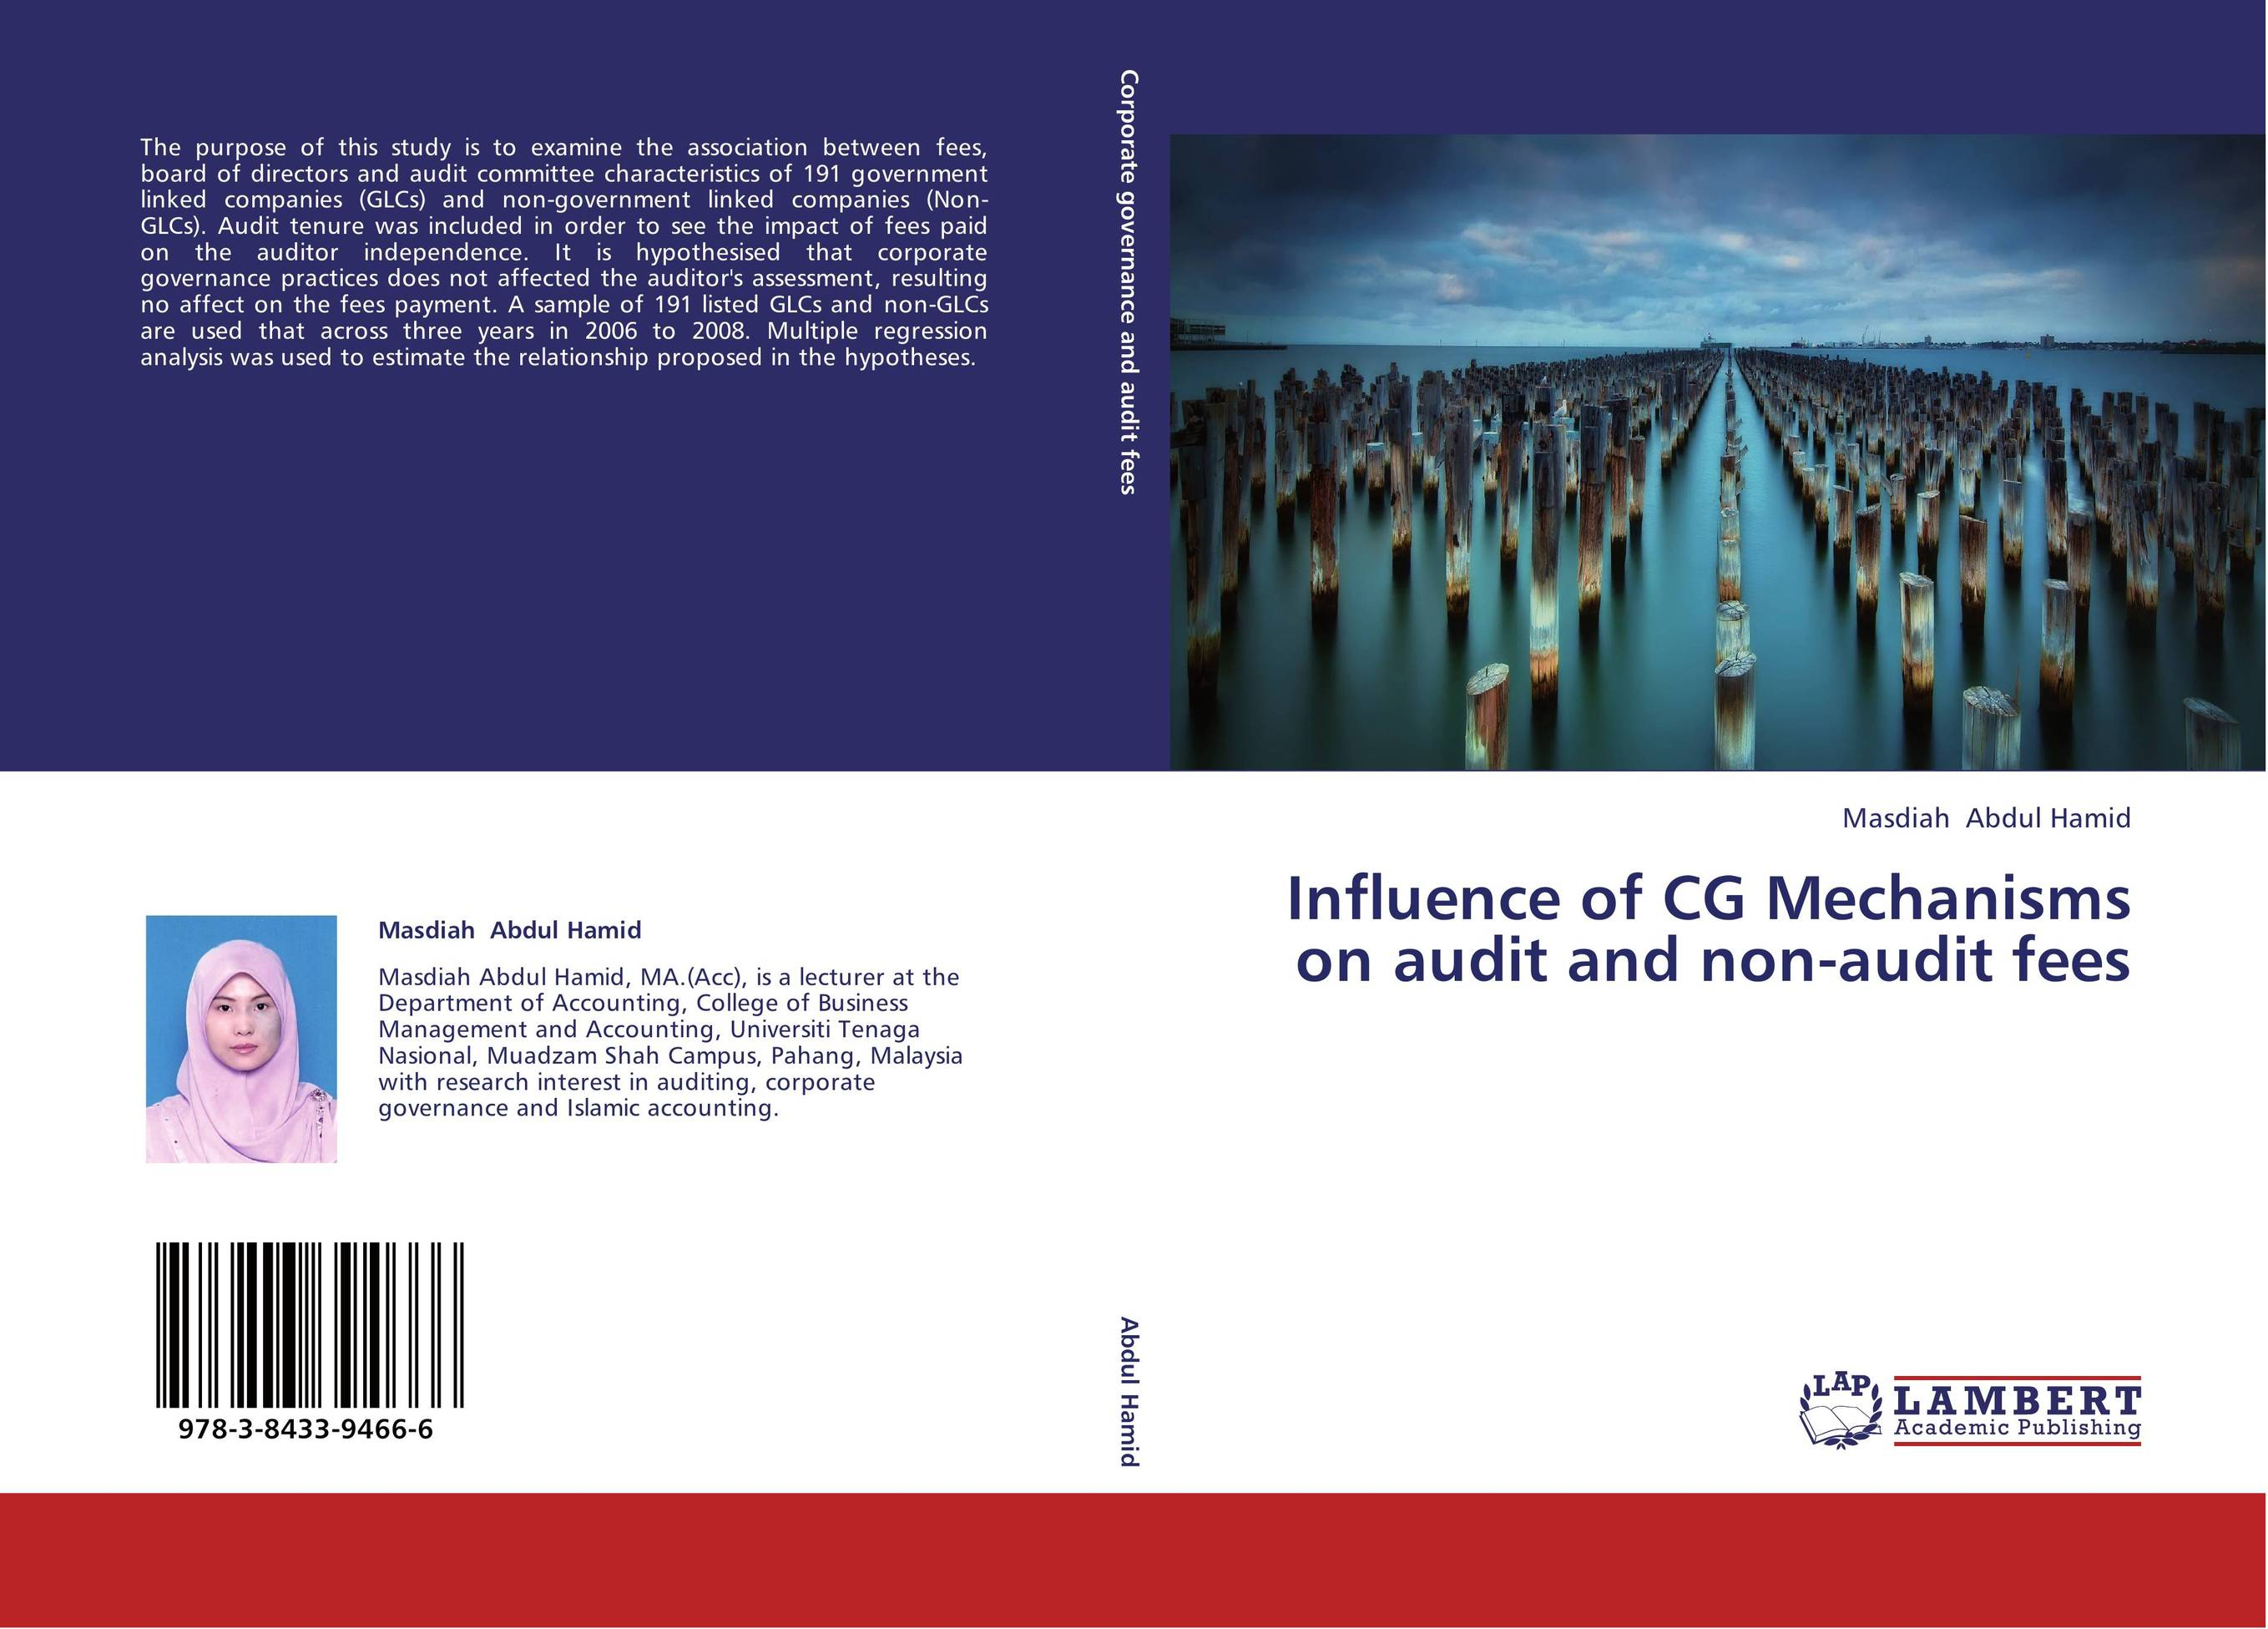 independence of auditing Audit independence means to take an unbiased and objective view when carrying out auditing procedures in terms of audit tests, the evaluation of the results and the issuance of the audit report.